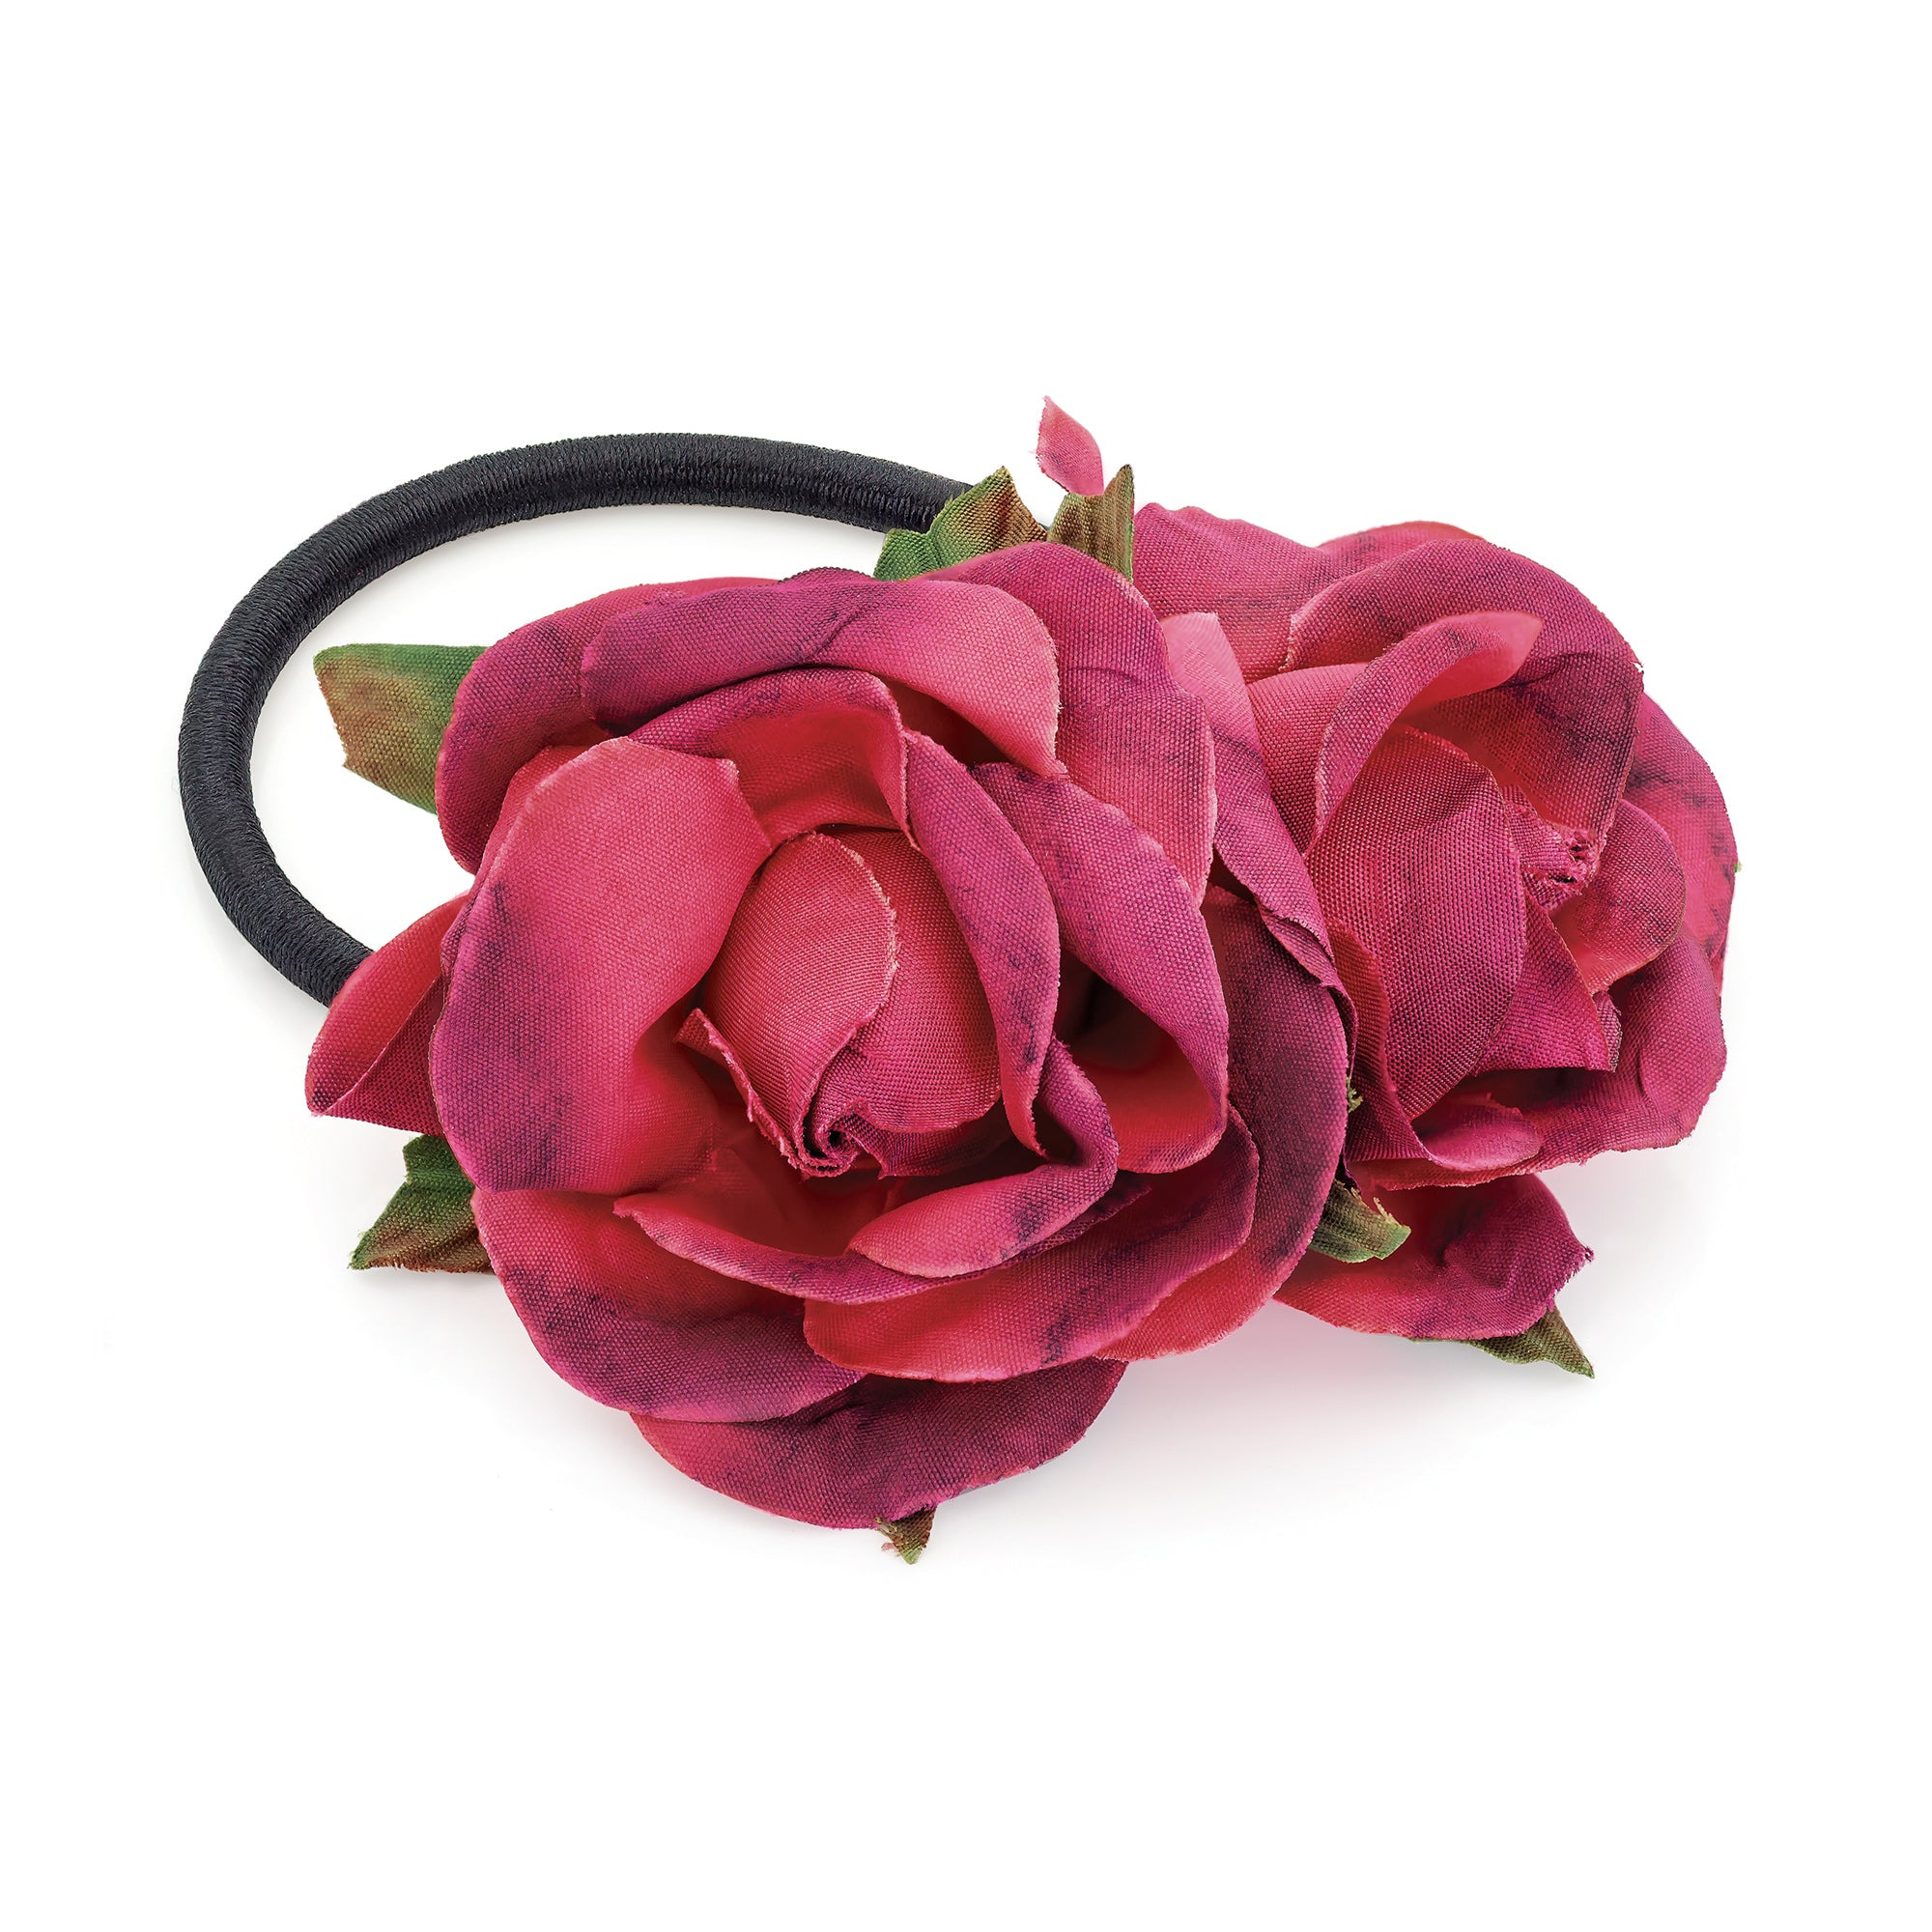 Double Rose Flower Hair Elastic Burgundy Tone with Green Leaves 7cm